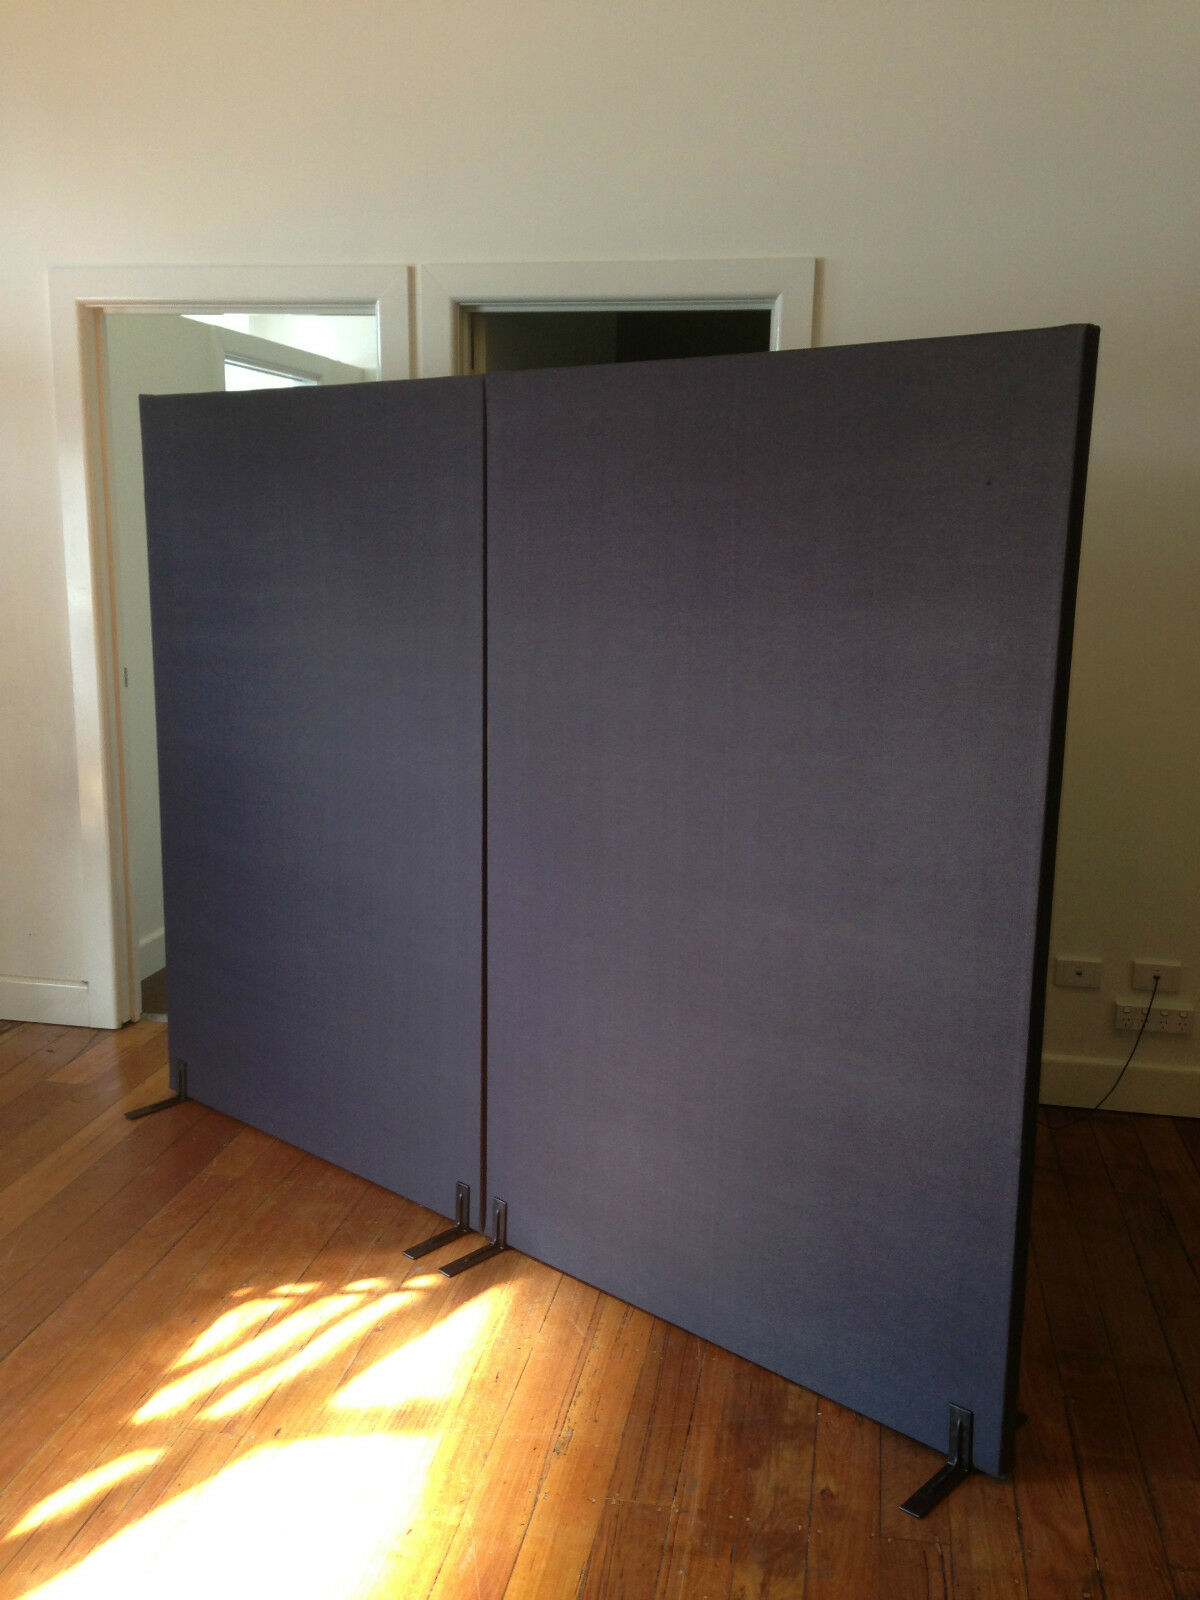 new partition screen office divider temporary wall aud